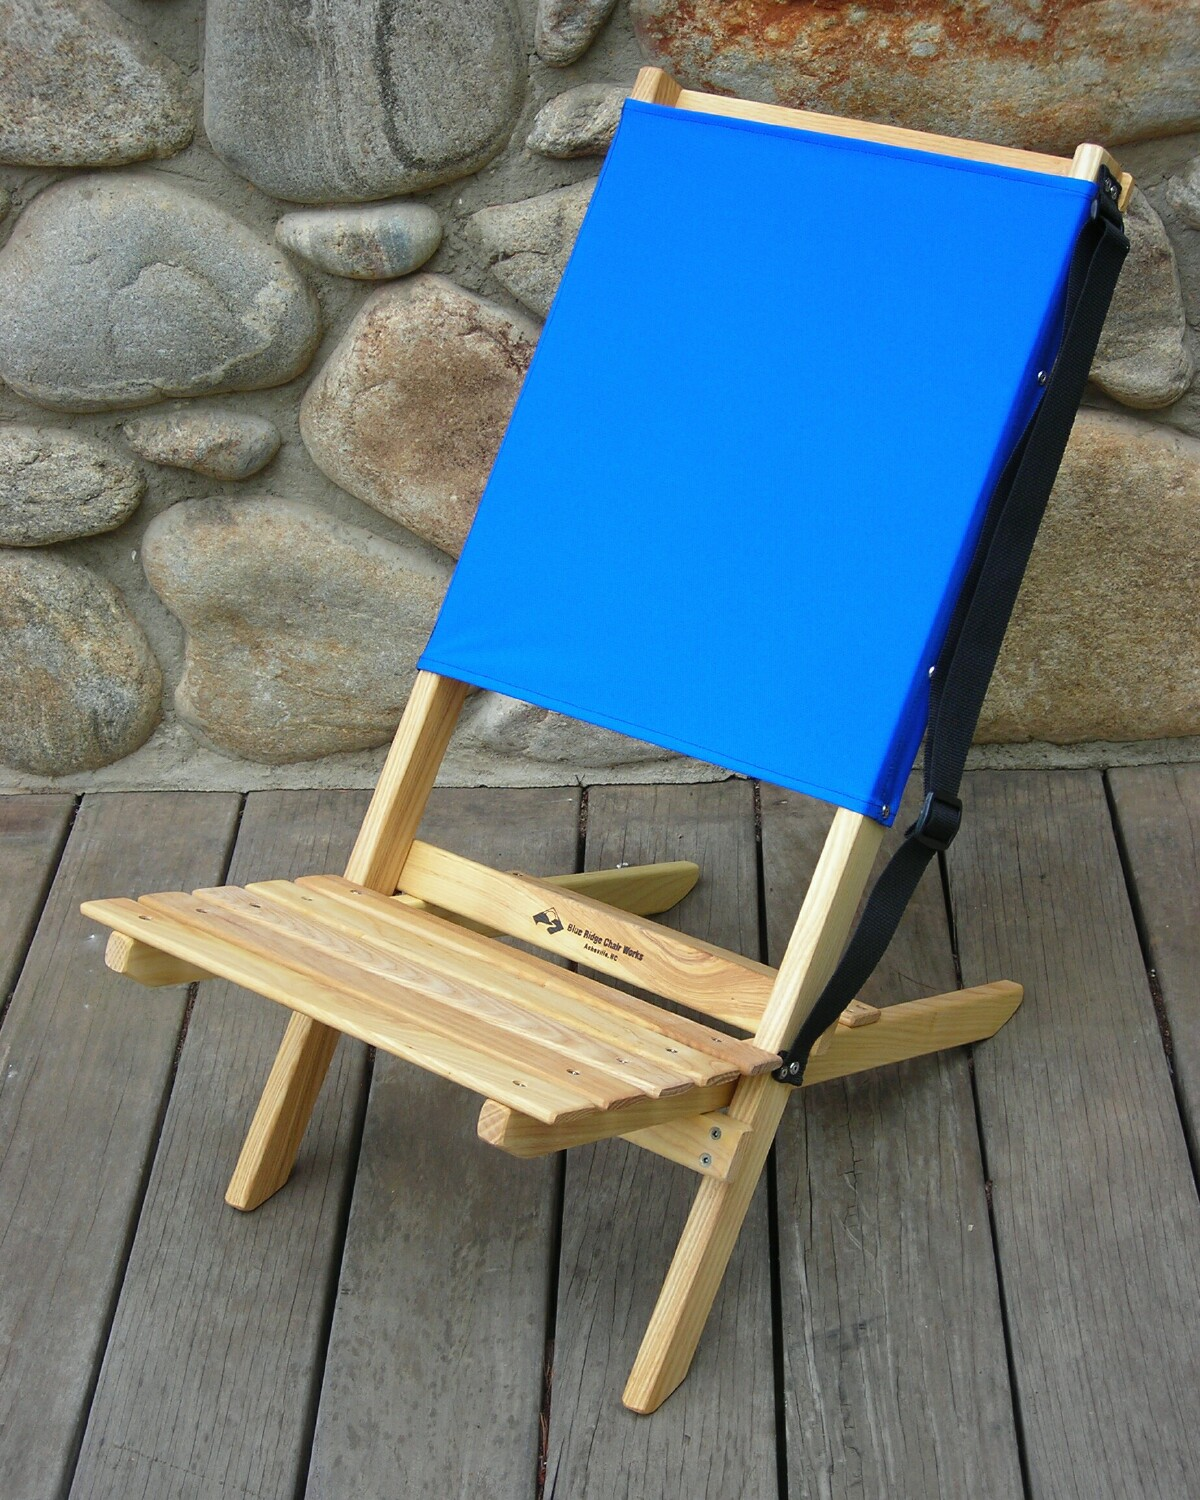 Outdoor Folding And Travel Chairs For Camping Picnics And